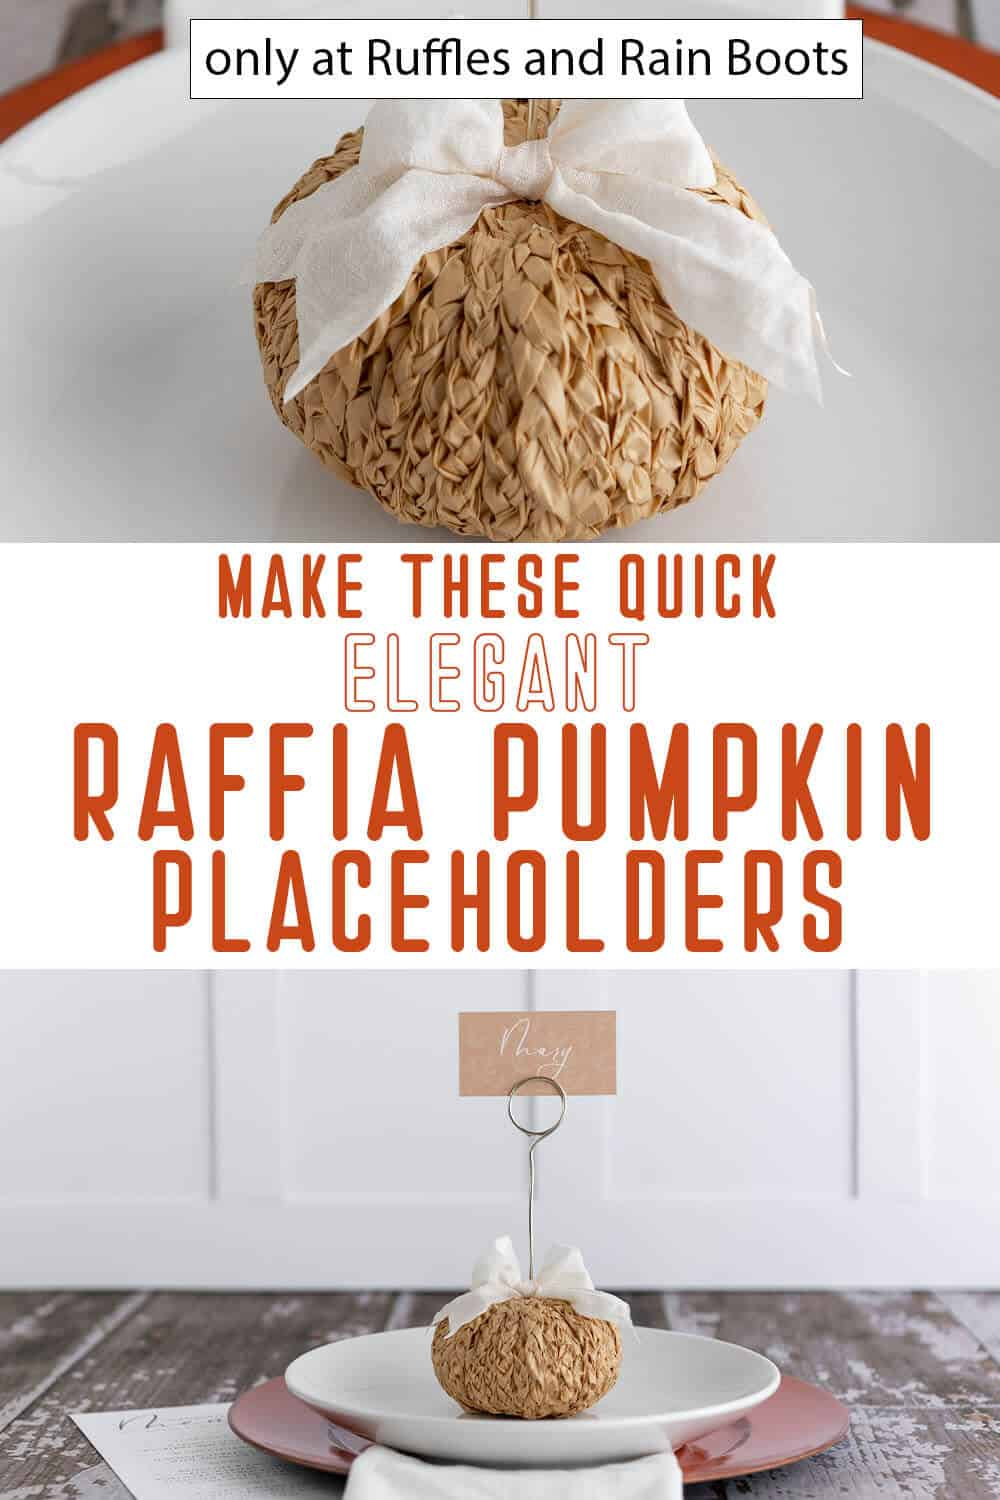 photo collage of braided raffia placeholder pumpkins for fall tablescape with text which reads make these quick elegant raffia pumpkin placeholders